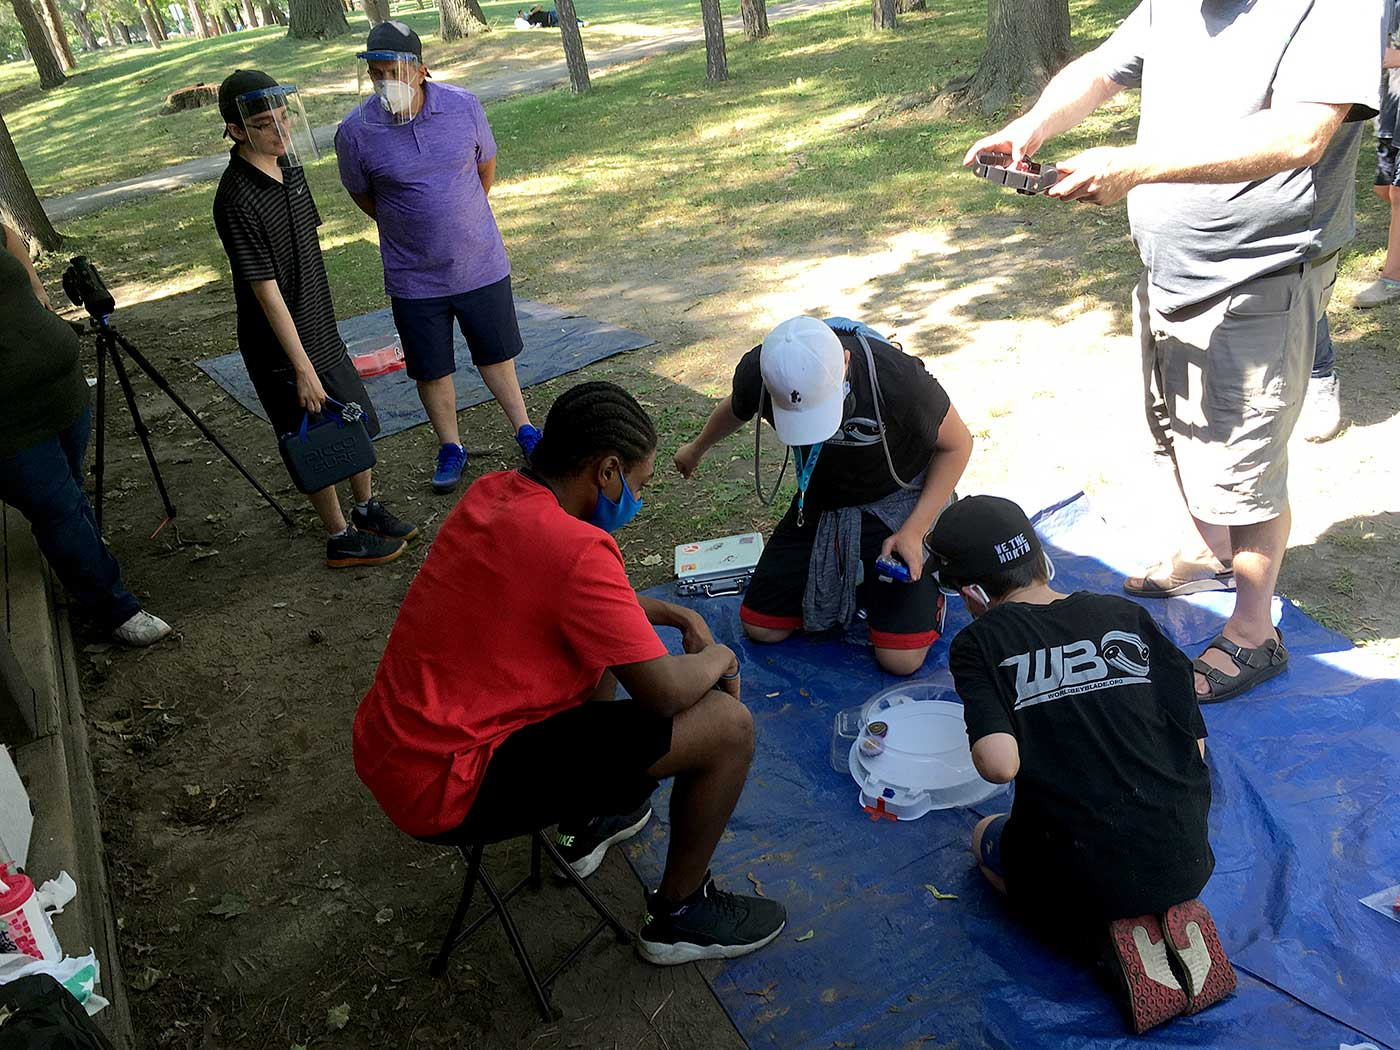 beyblade tournament battle players launching in park